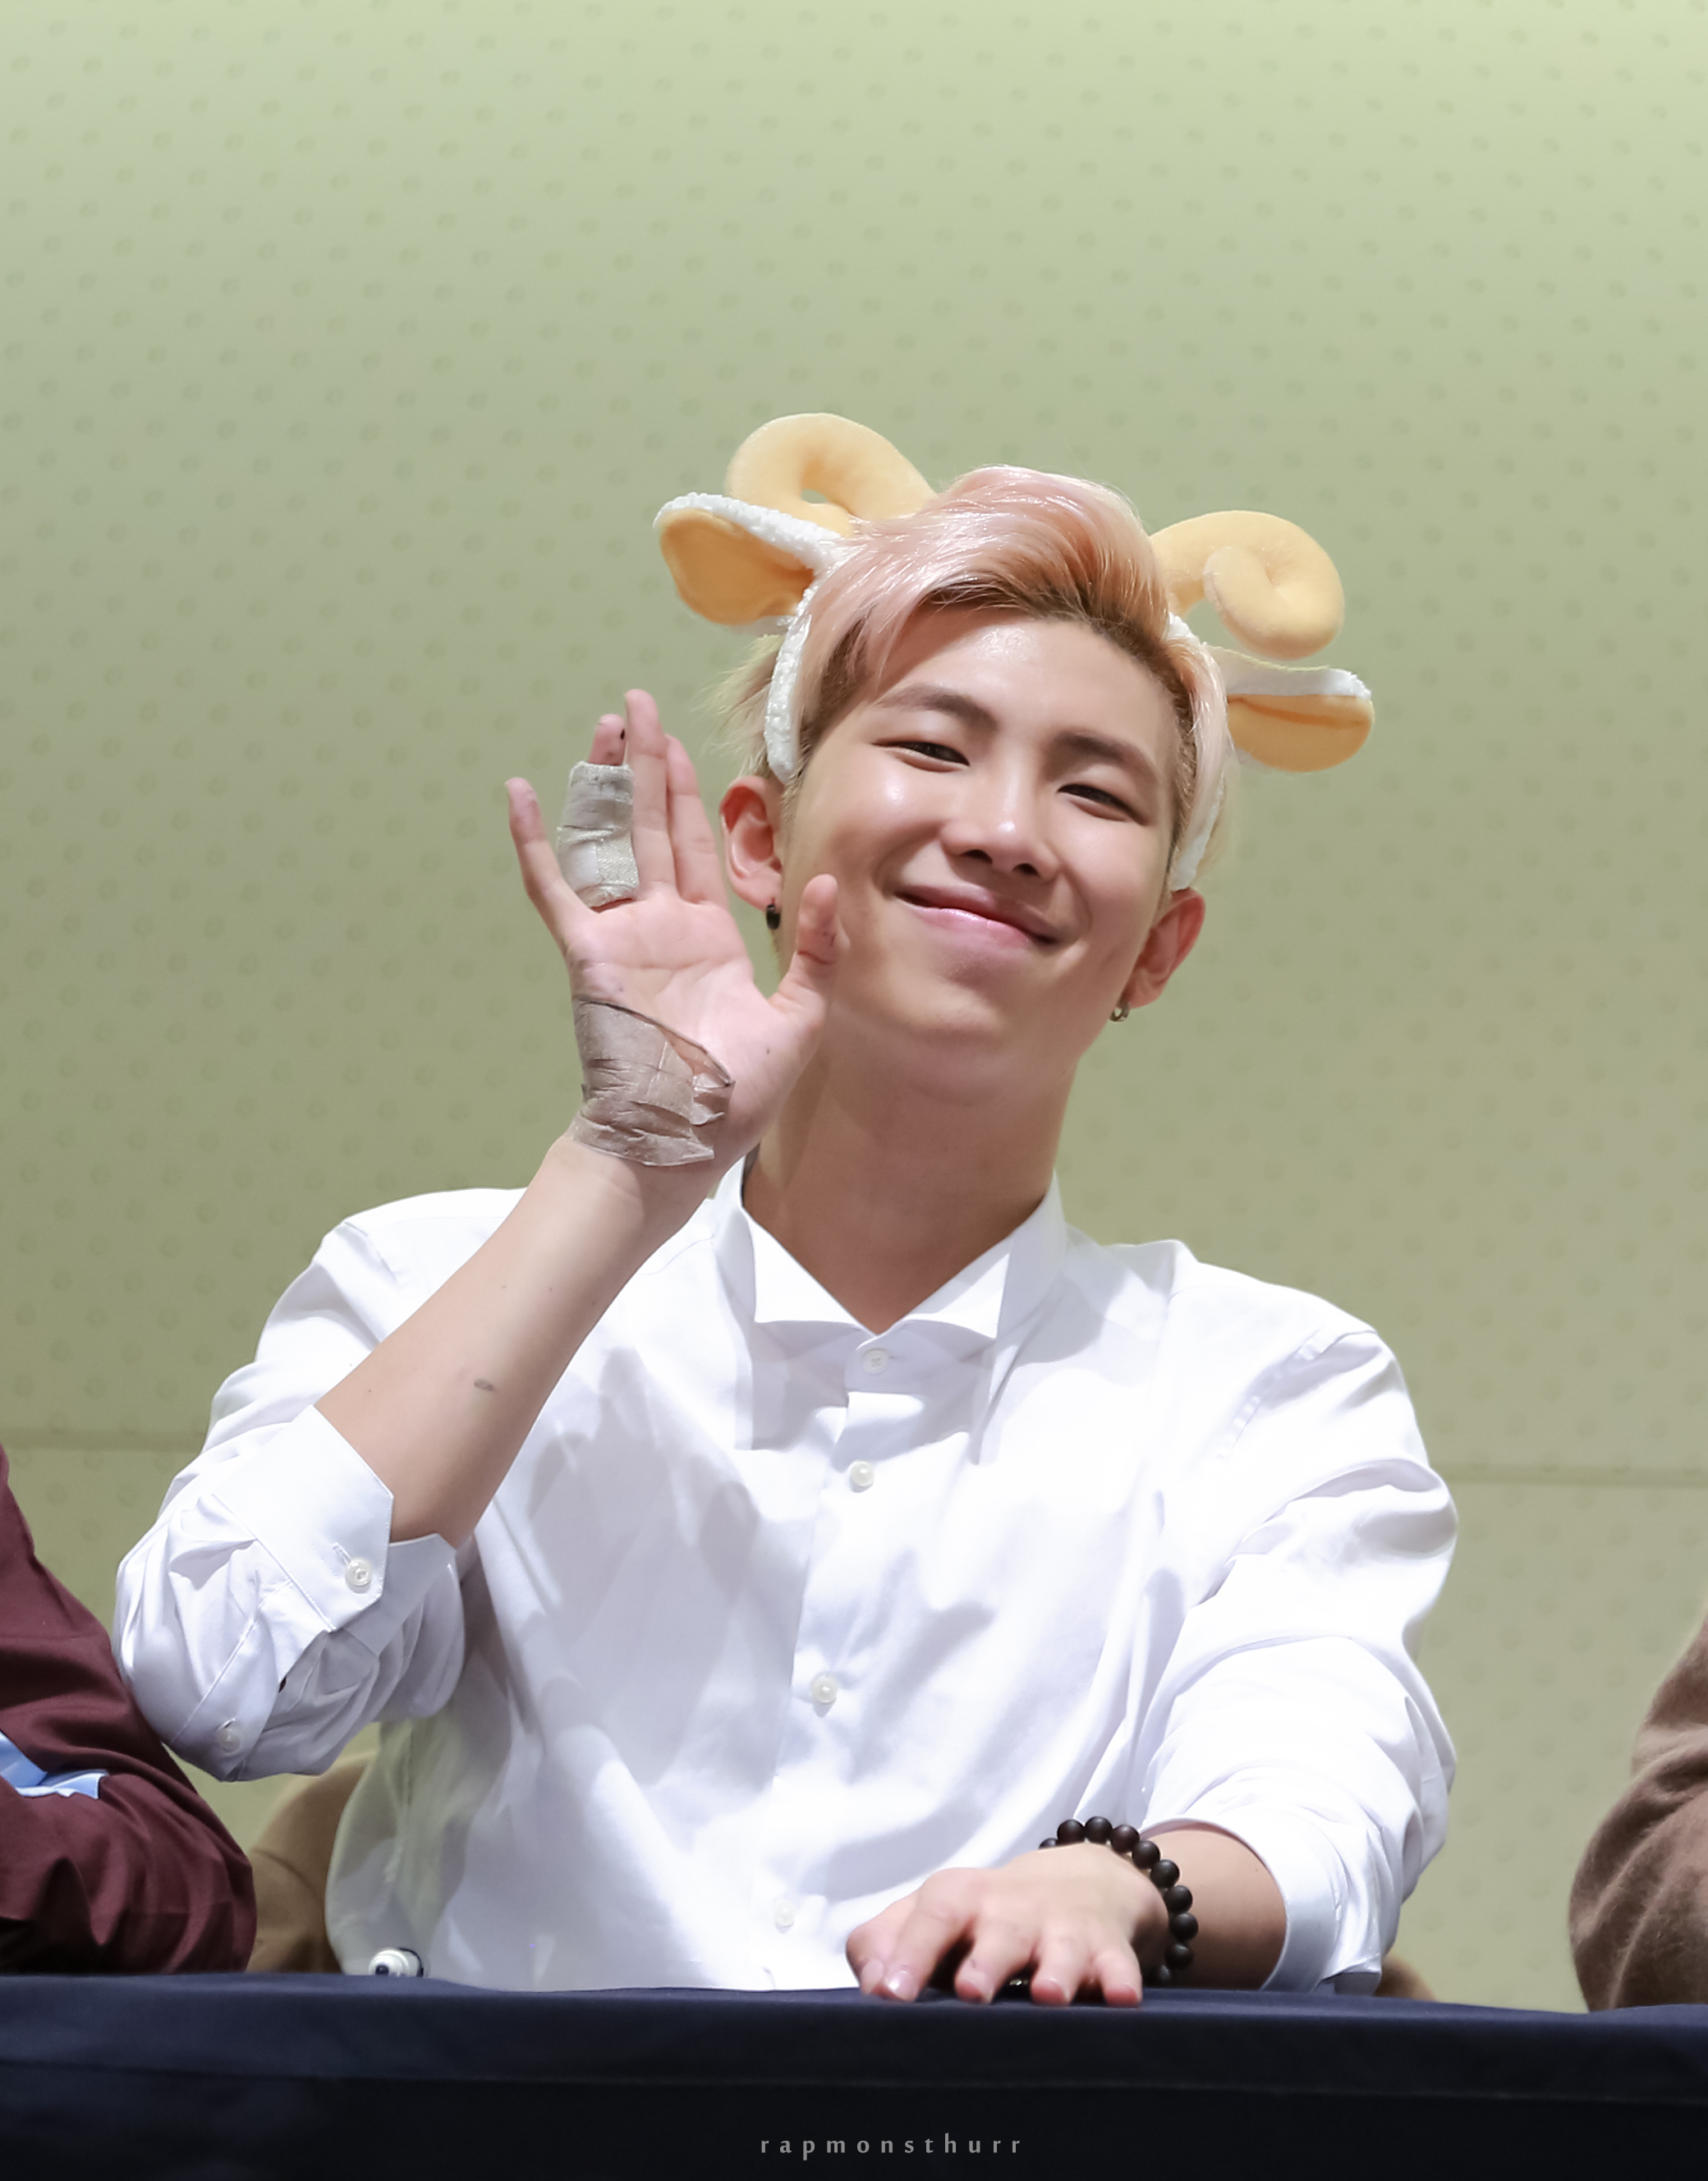 4 - Rapmonster of BTS